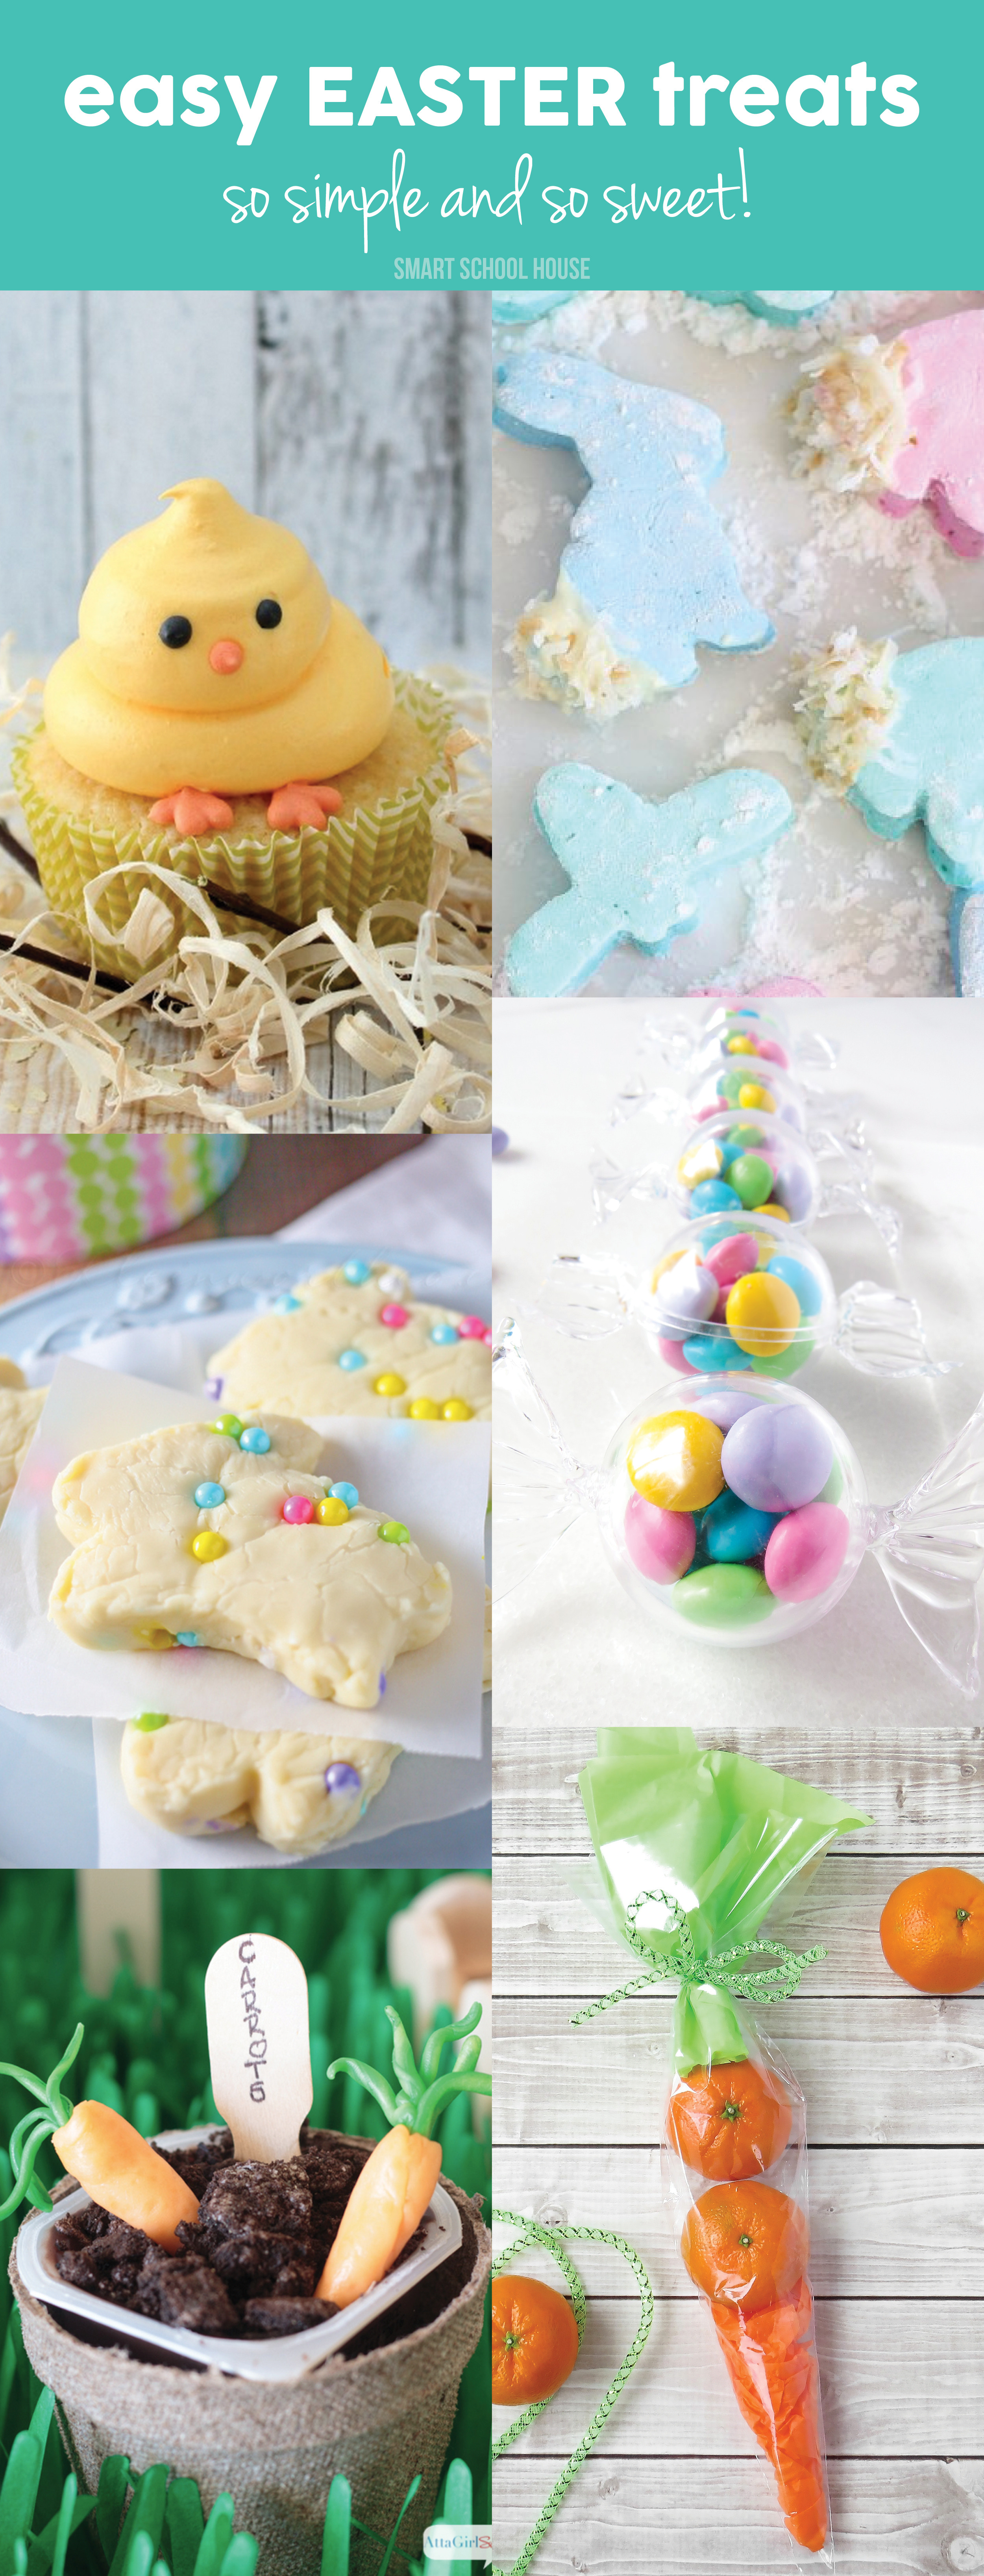 Quick And Easy Easter Desserts  easy easter treats